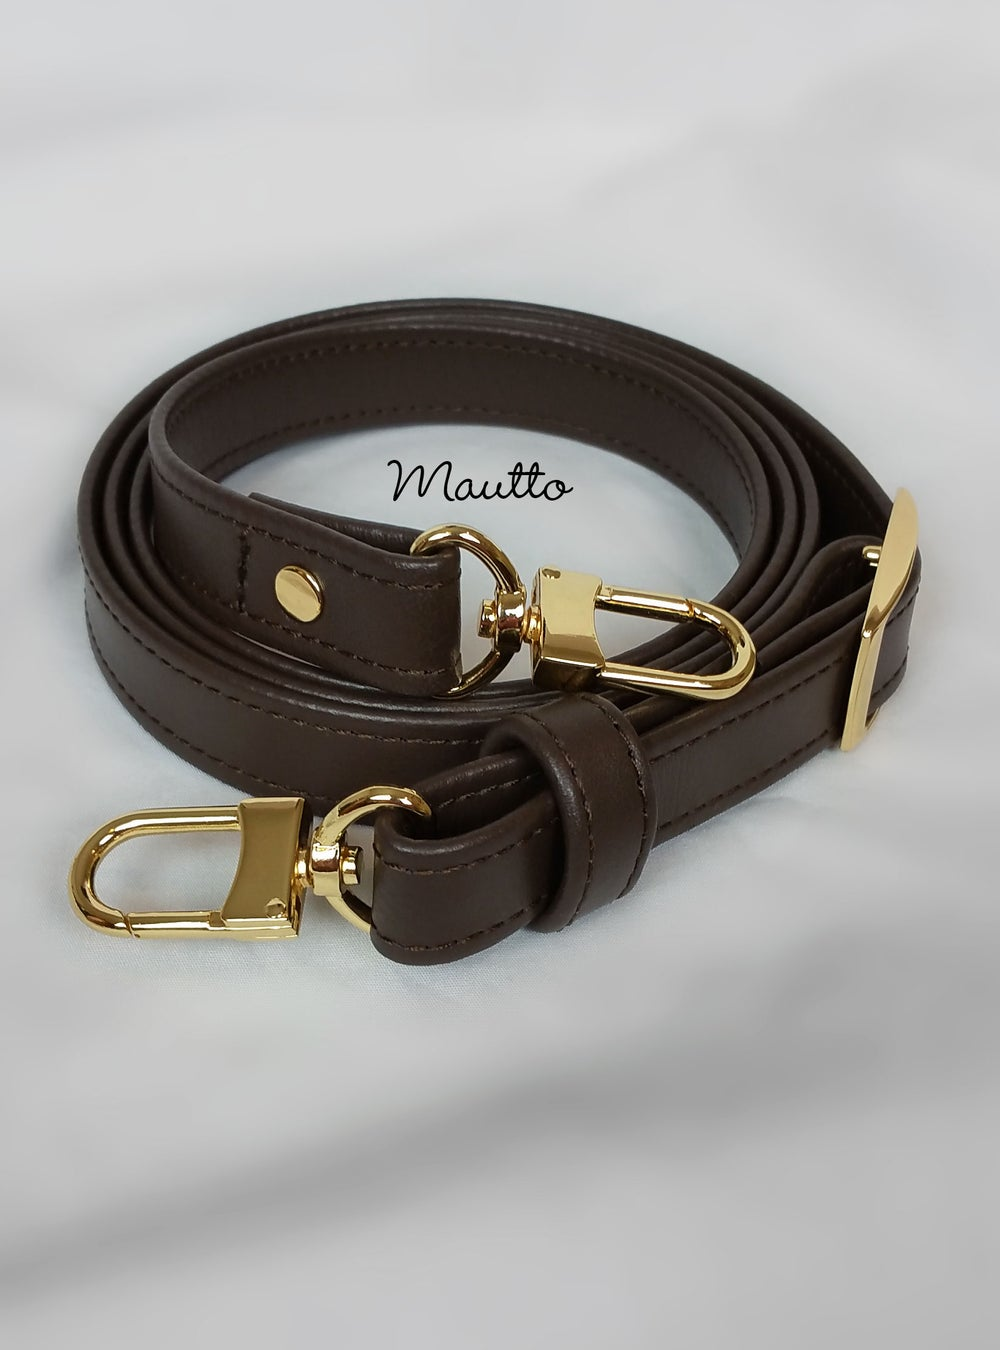 """Image of Dark Brown Leather Strap for Louis Vuitton, Coach, etc - 3/4"""" Wide - Top Handle to Crossbody Lengths"""